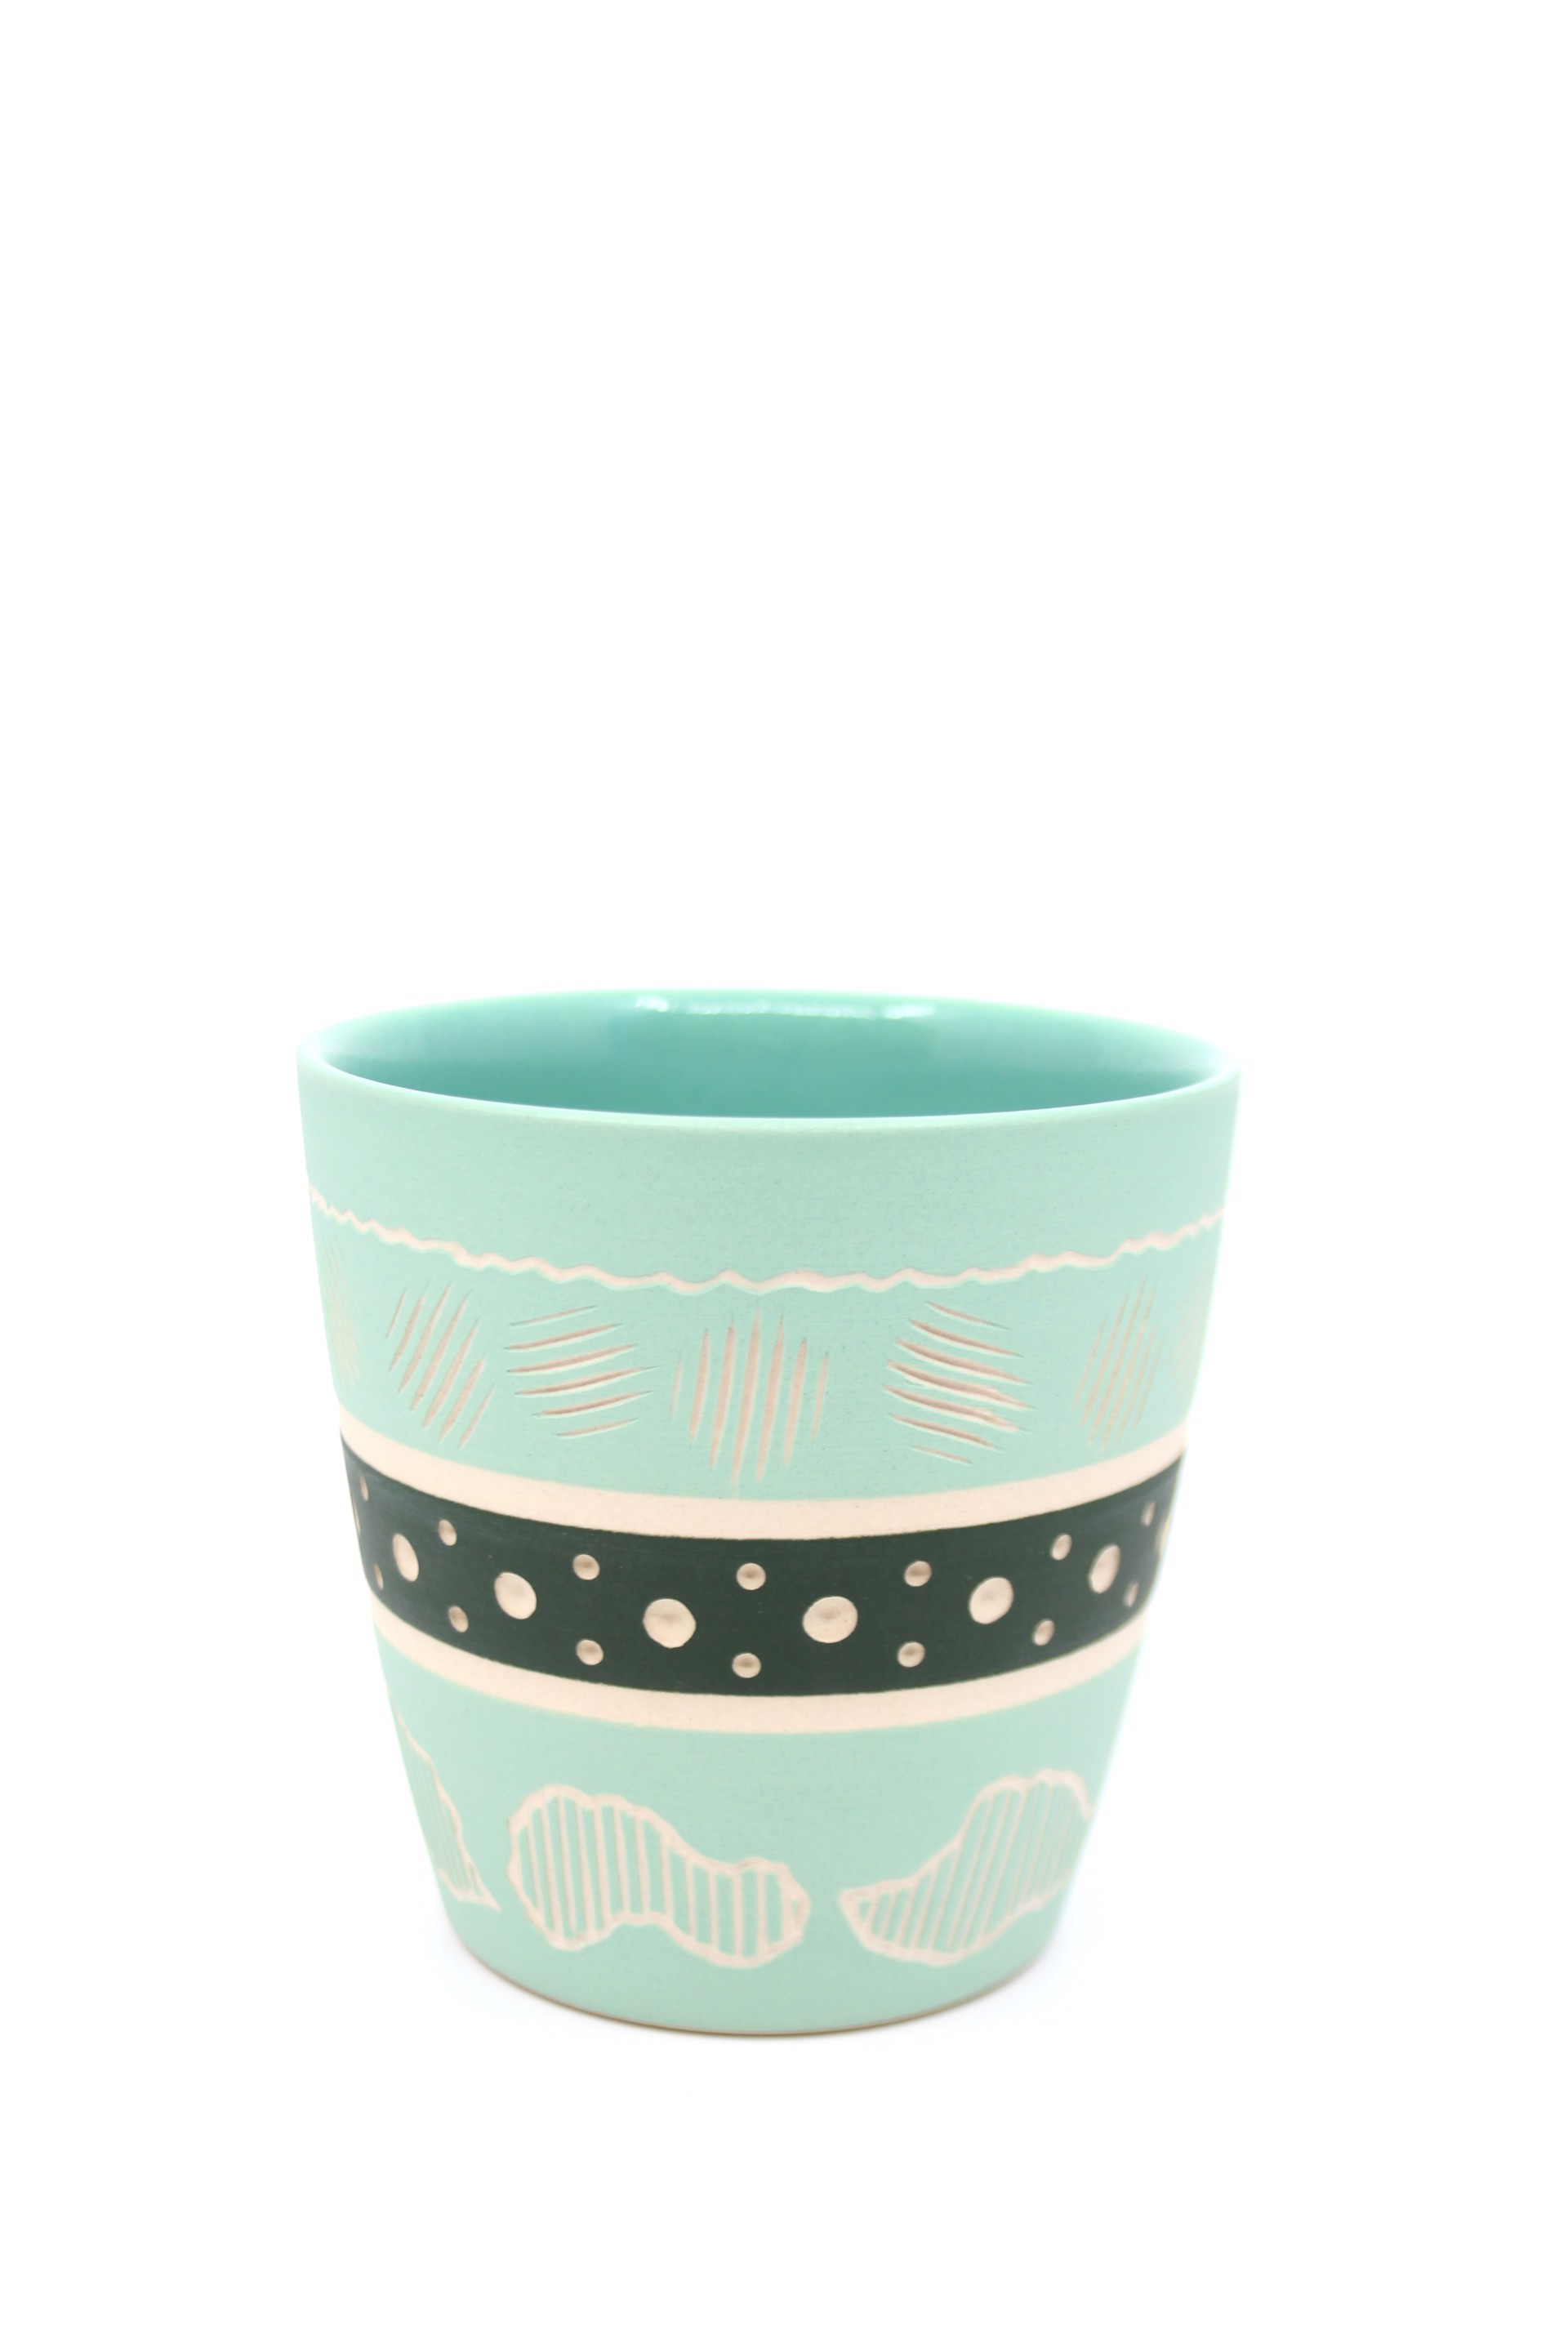 Mint/Forest Green Cup by Chris Casey